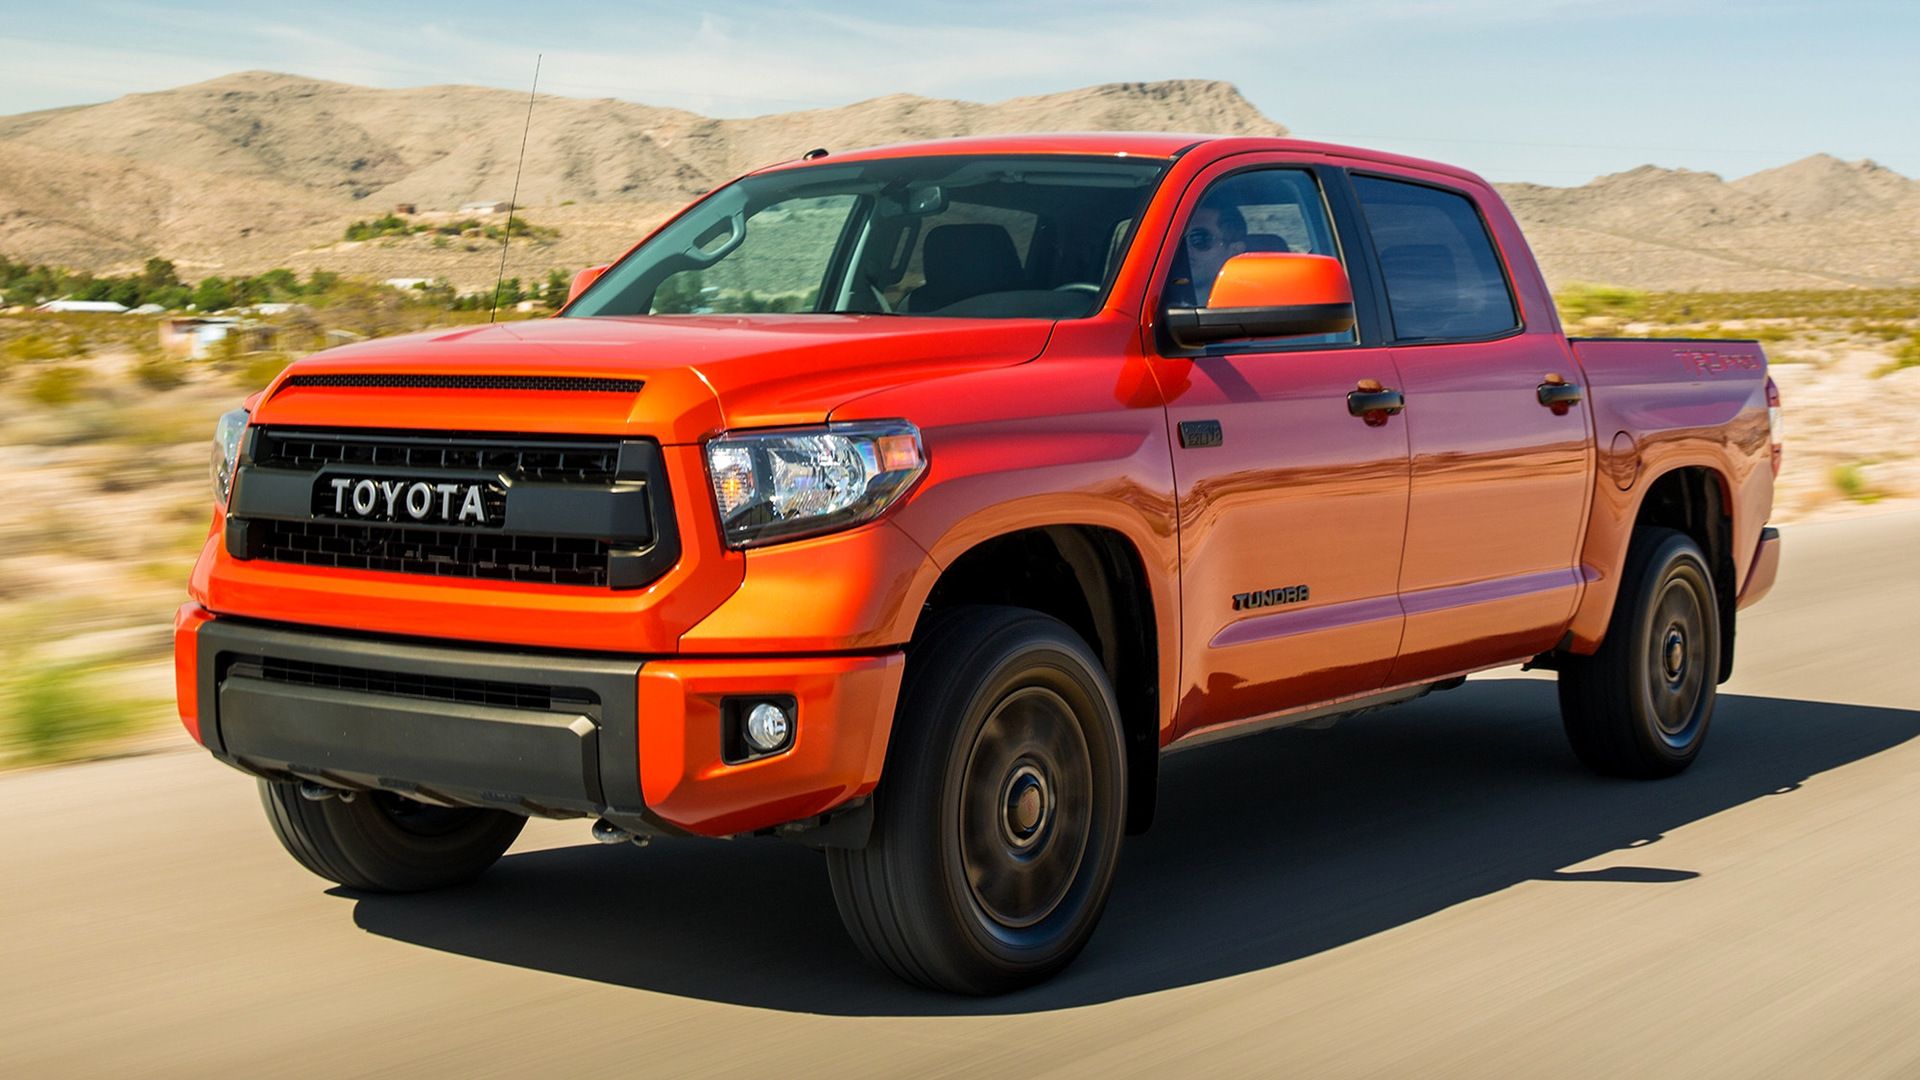 Tundra Trd Pro >> 2014 TRD Toyota Tundra Double Cab Pro - Wallpapers and HD Images | Car Pixel